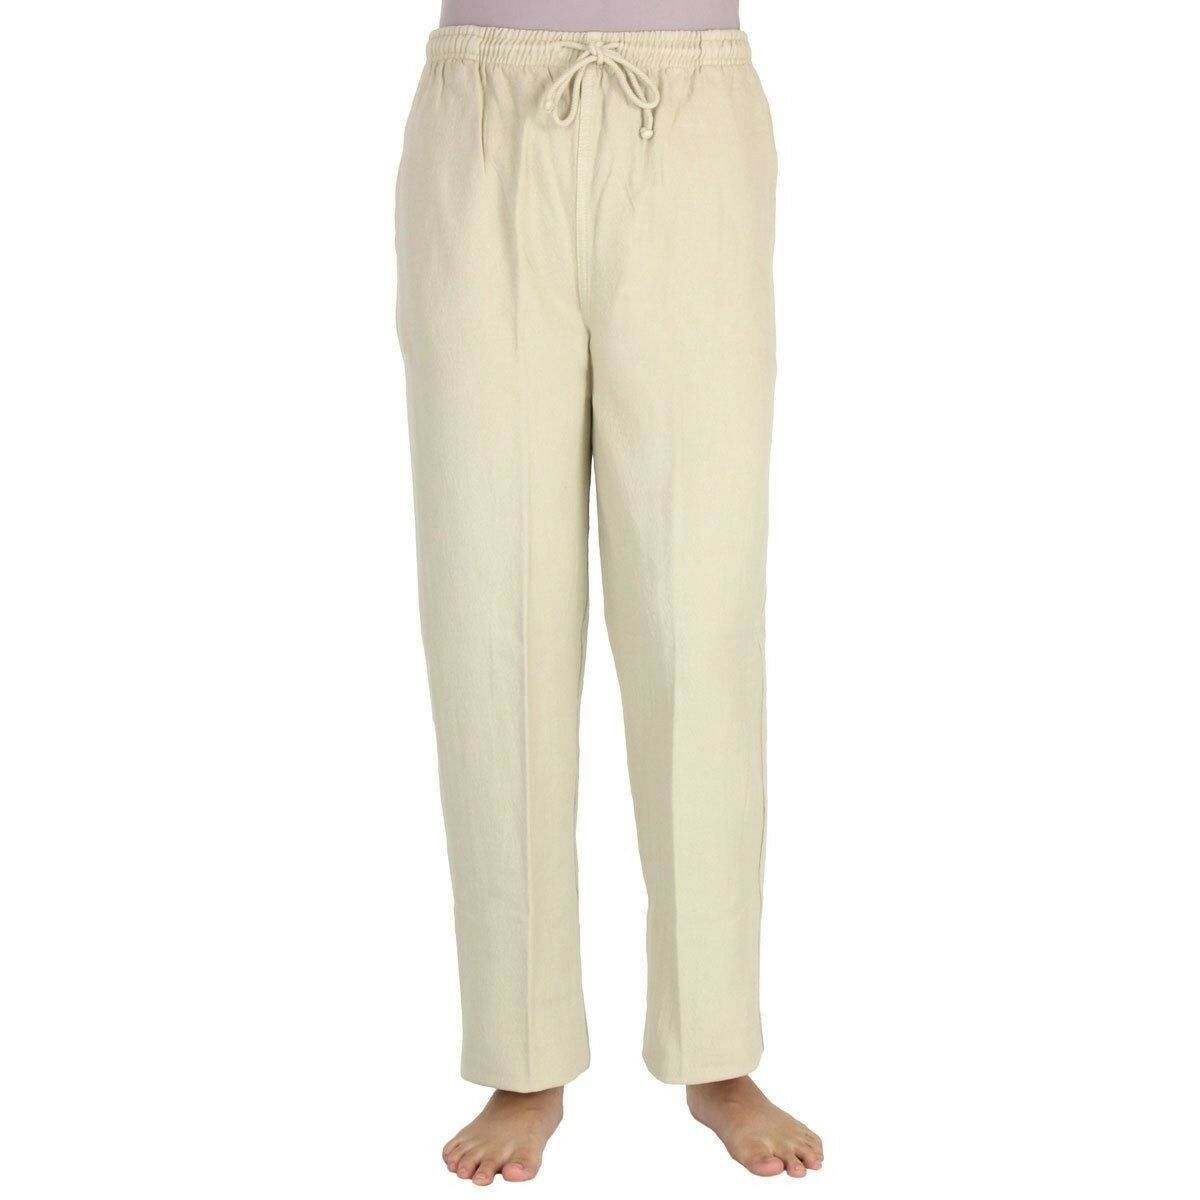 Ladies Canton Cotton Pants - Sea Breeze - 100% Cotton - Made in USA